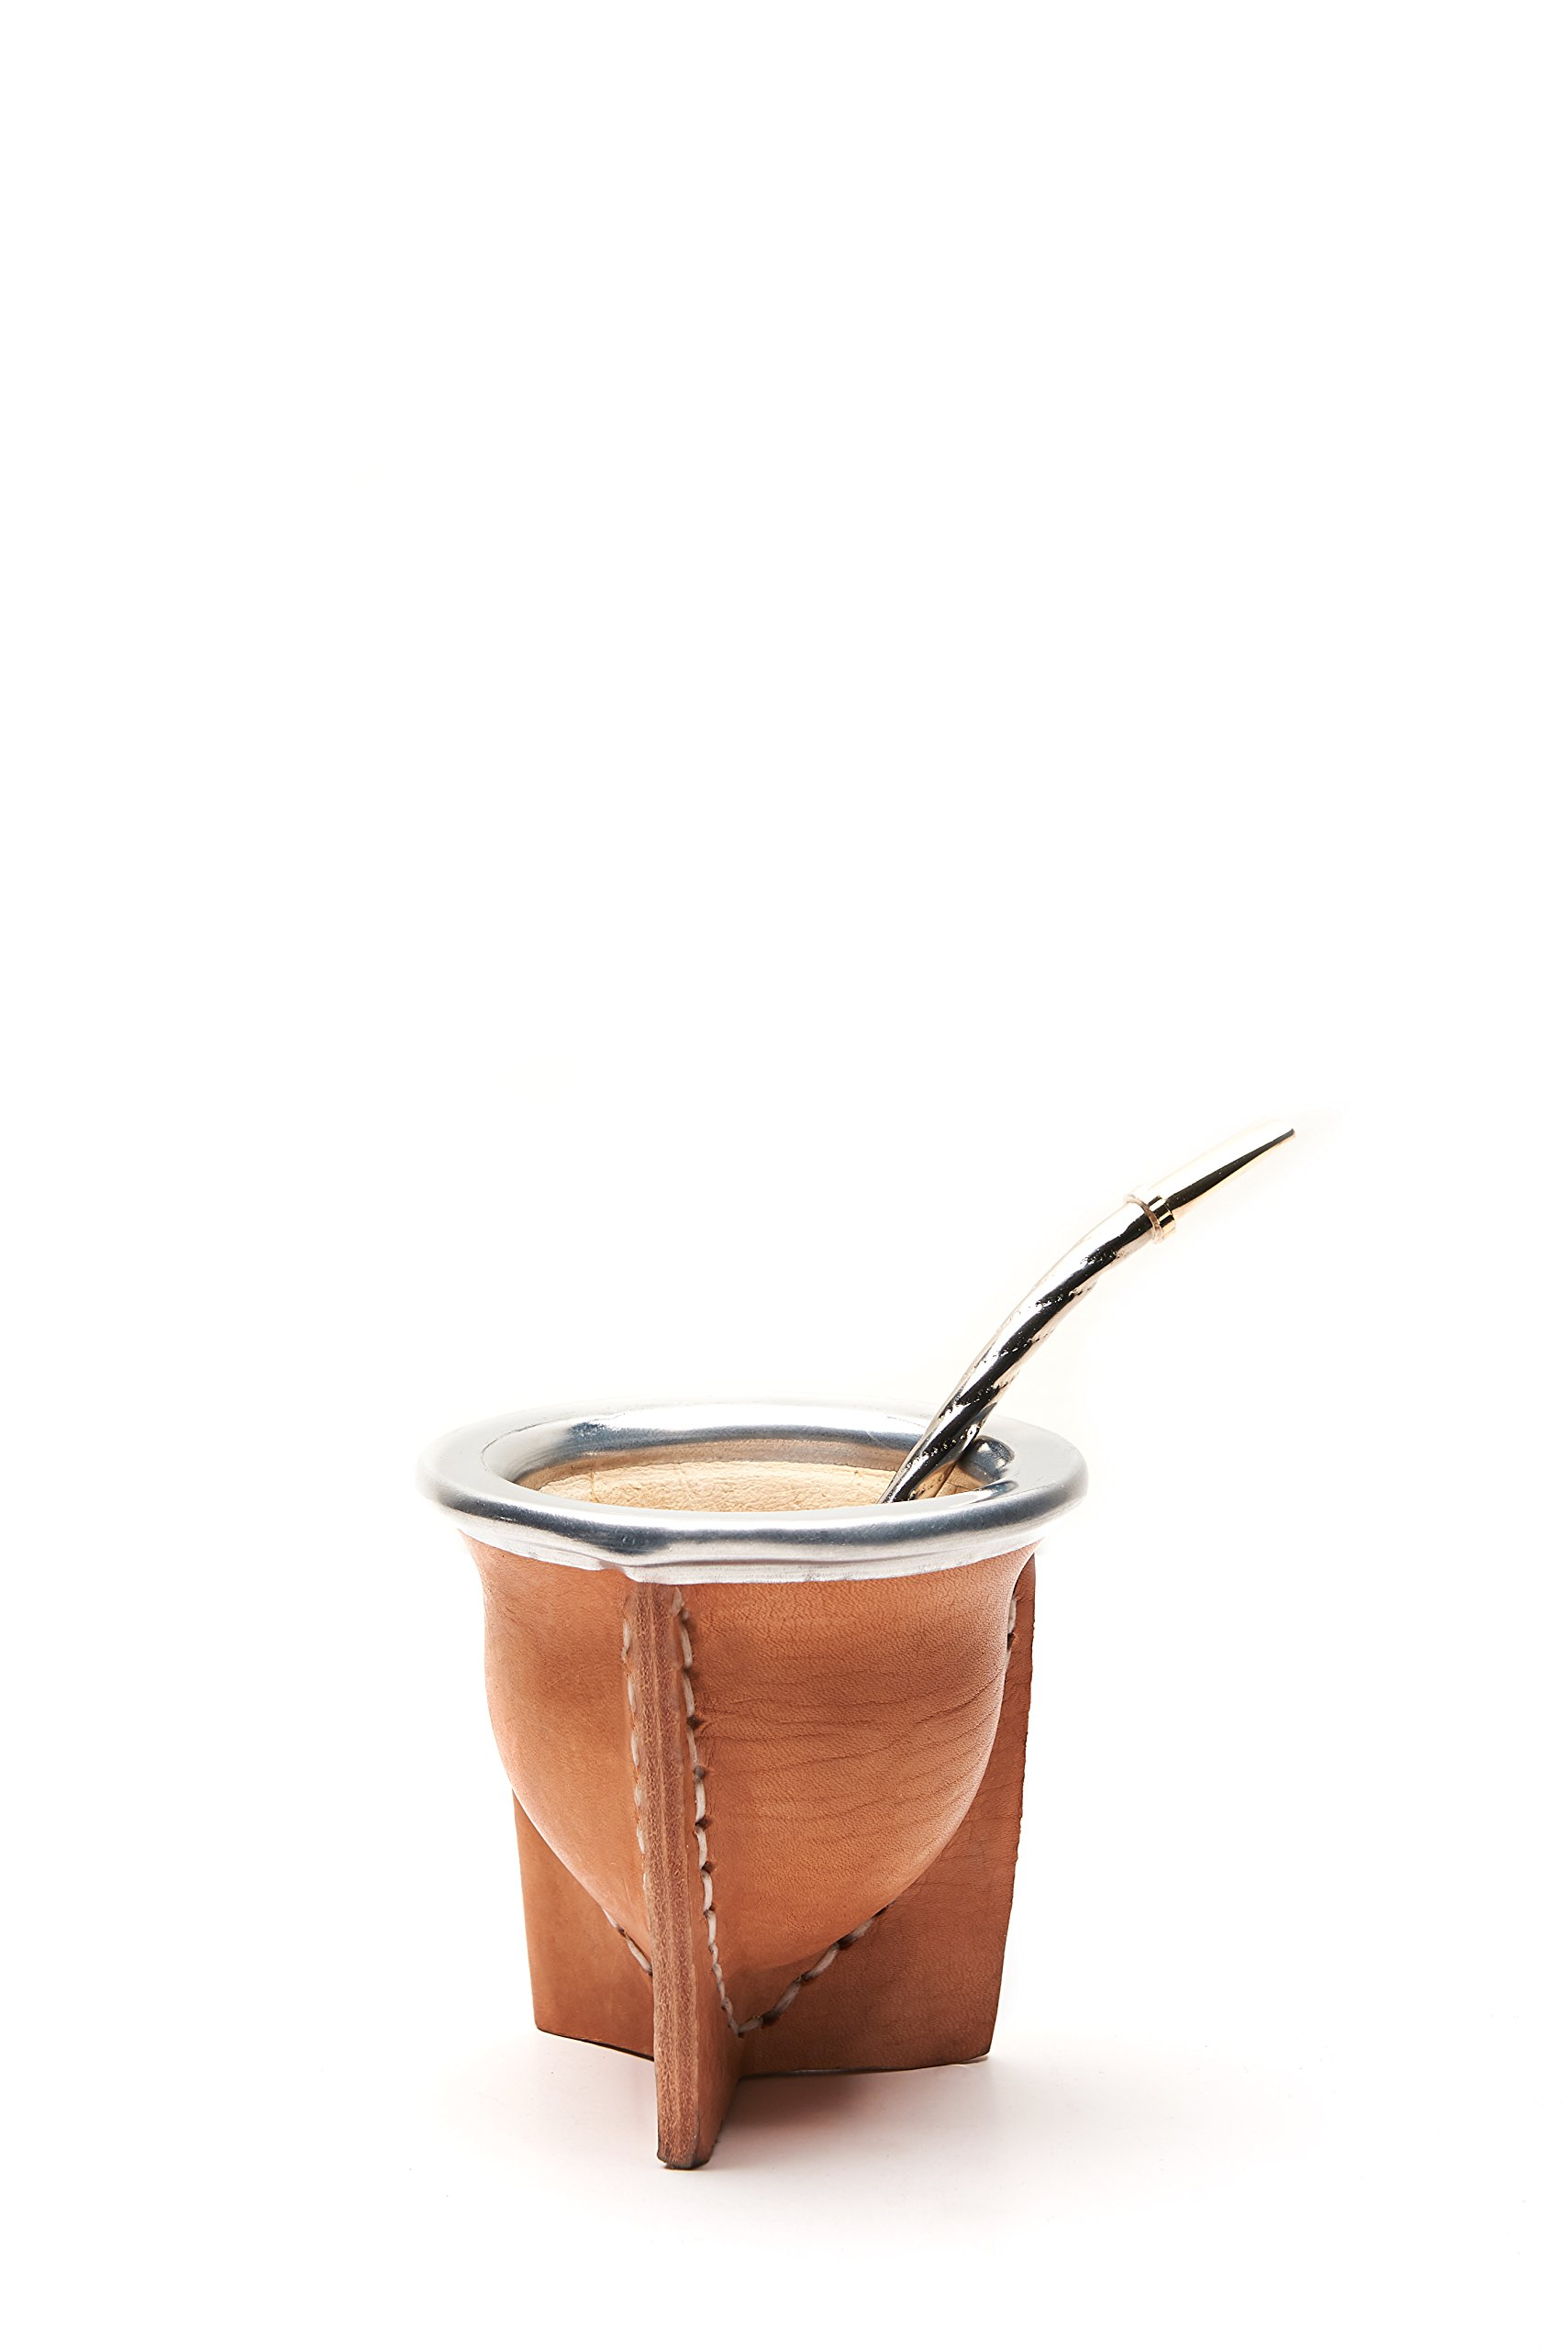 Leather Wrapped Handmade Mate Gourd Including Straw (Bombilla) (Natural)